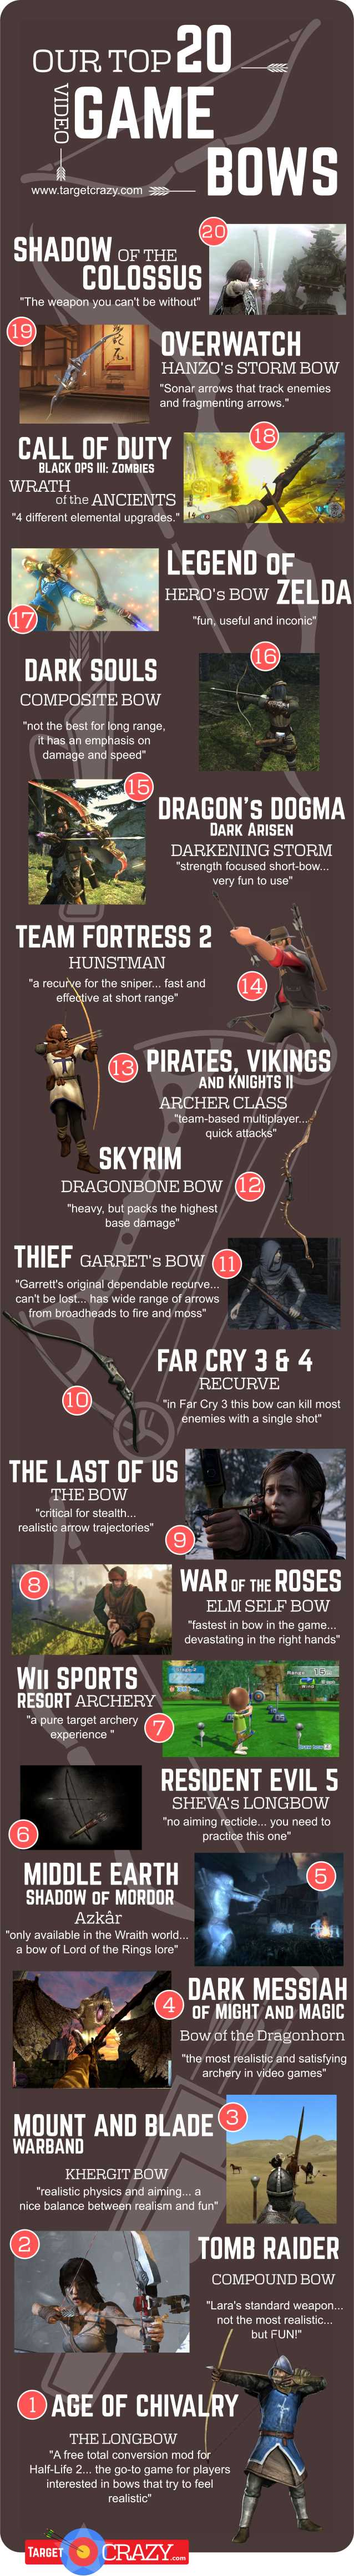 20 of the Best Video Game Bows Ever